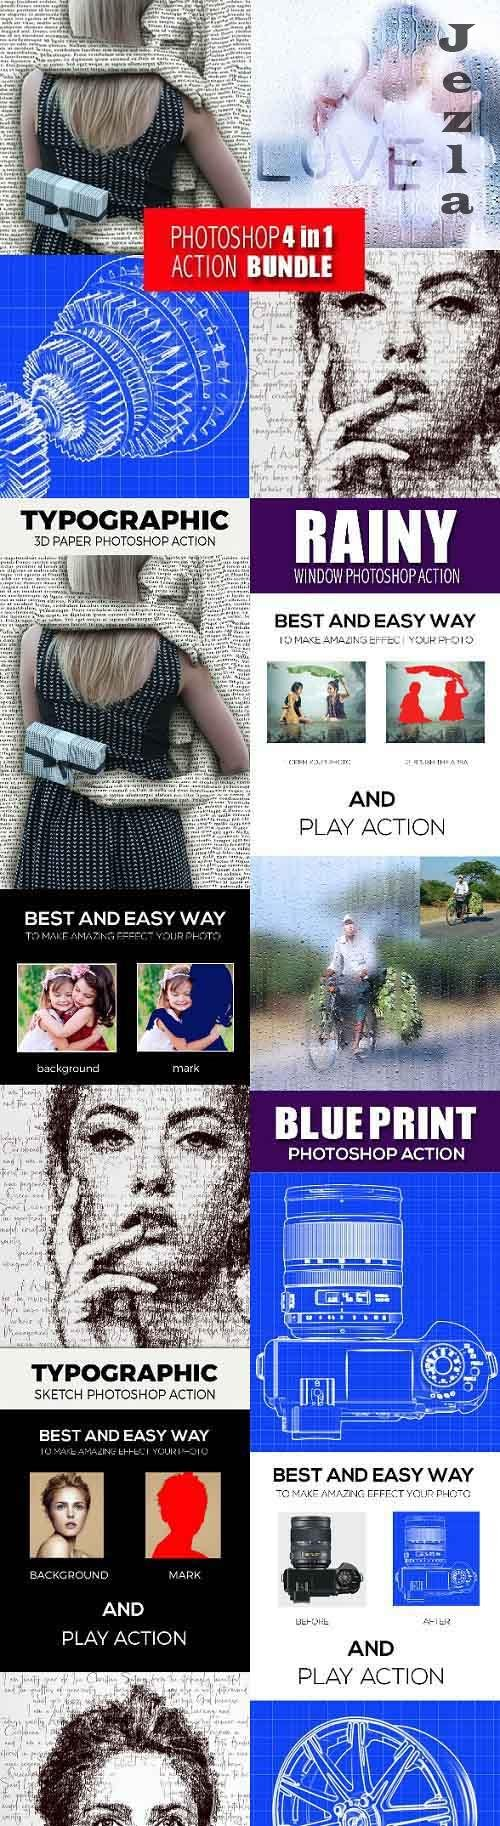 GraphicRiver - Photoshop 4in1 Actions Bundle V 7 28586206